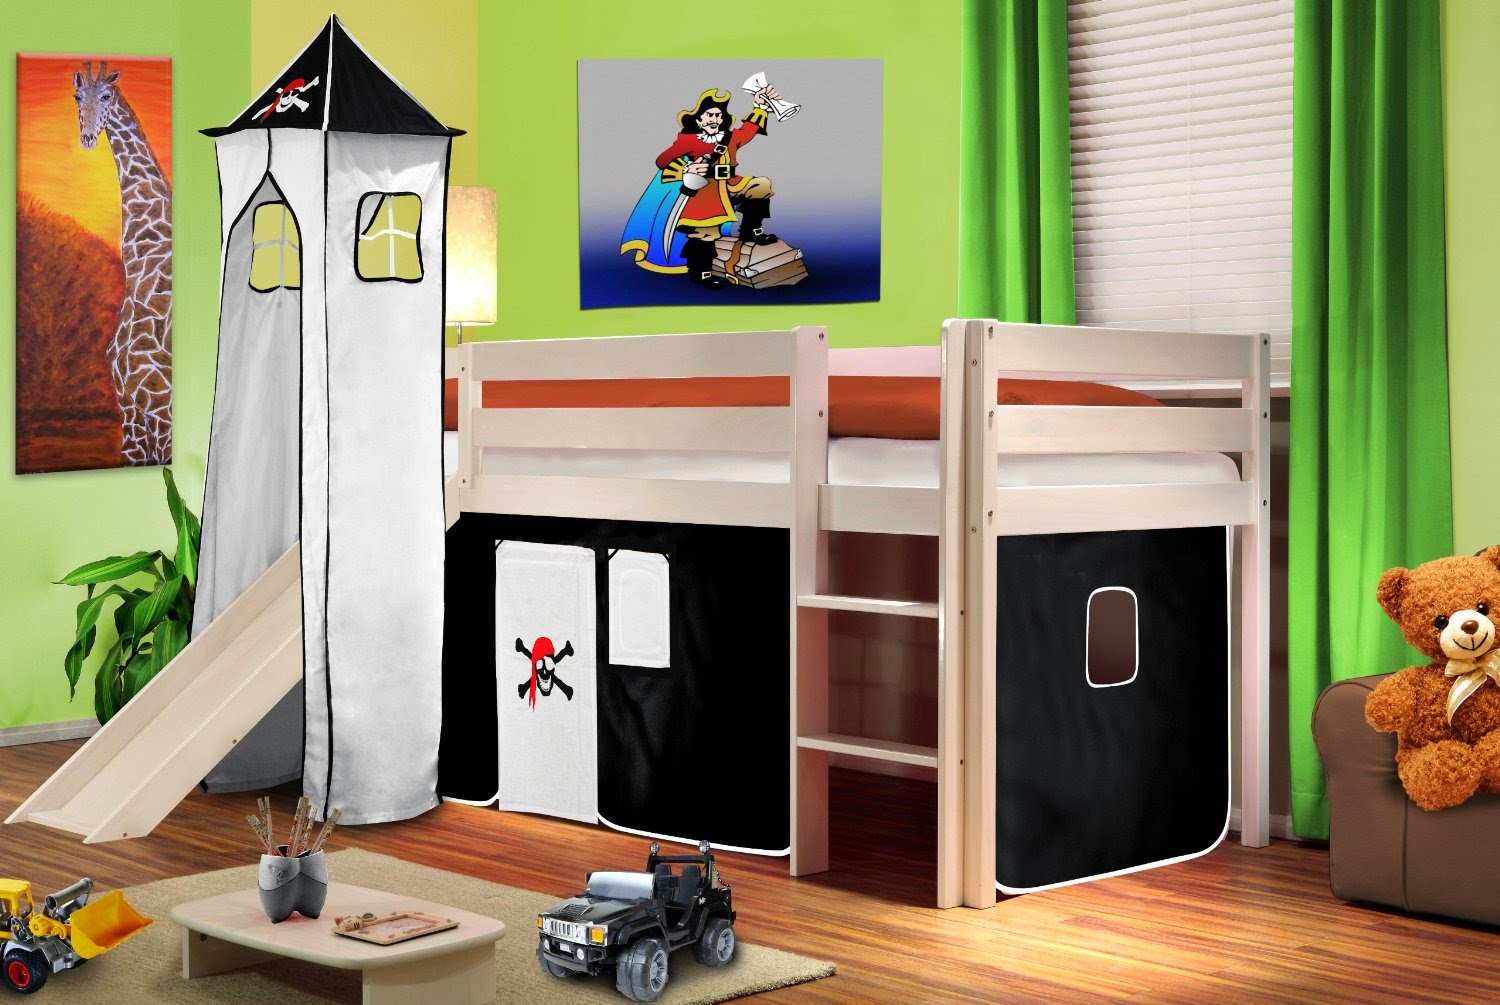 5 lits d 39 enfant originaux moins de 300 euros initiales gg. Black Bedroom Furniture Sets. Home Design Ideas